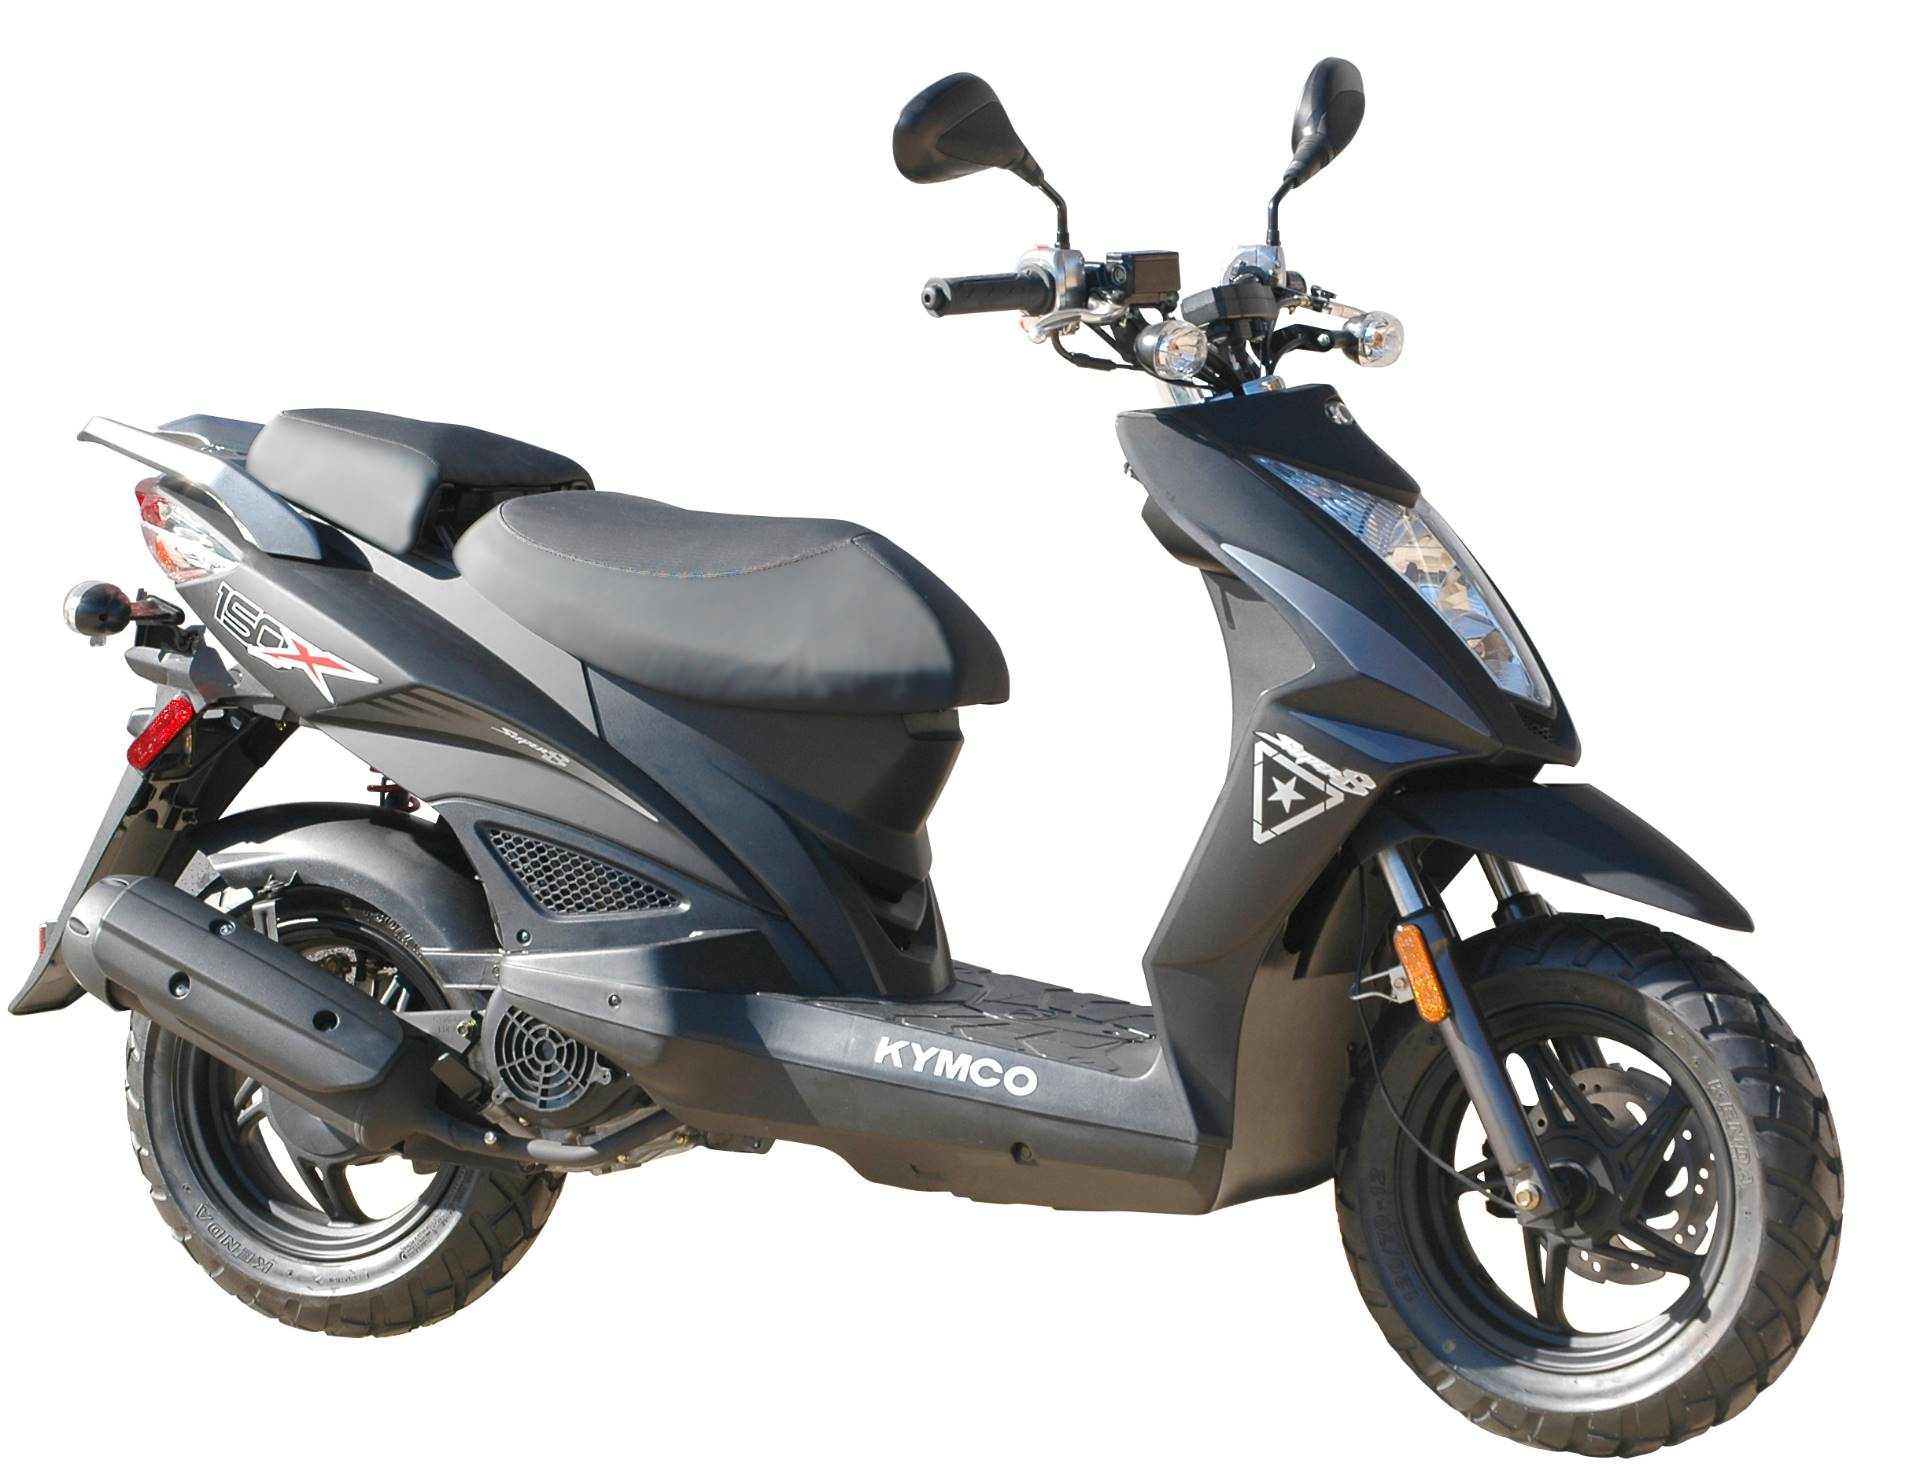 New 2018 Kymco SUPER 8 150 X Scooters in Talladega, AL | Stock ...